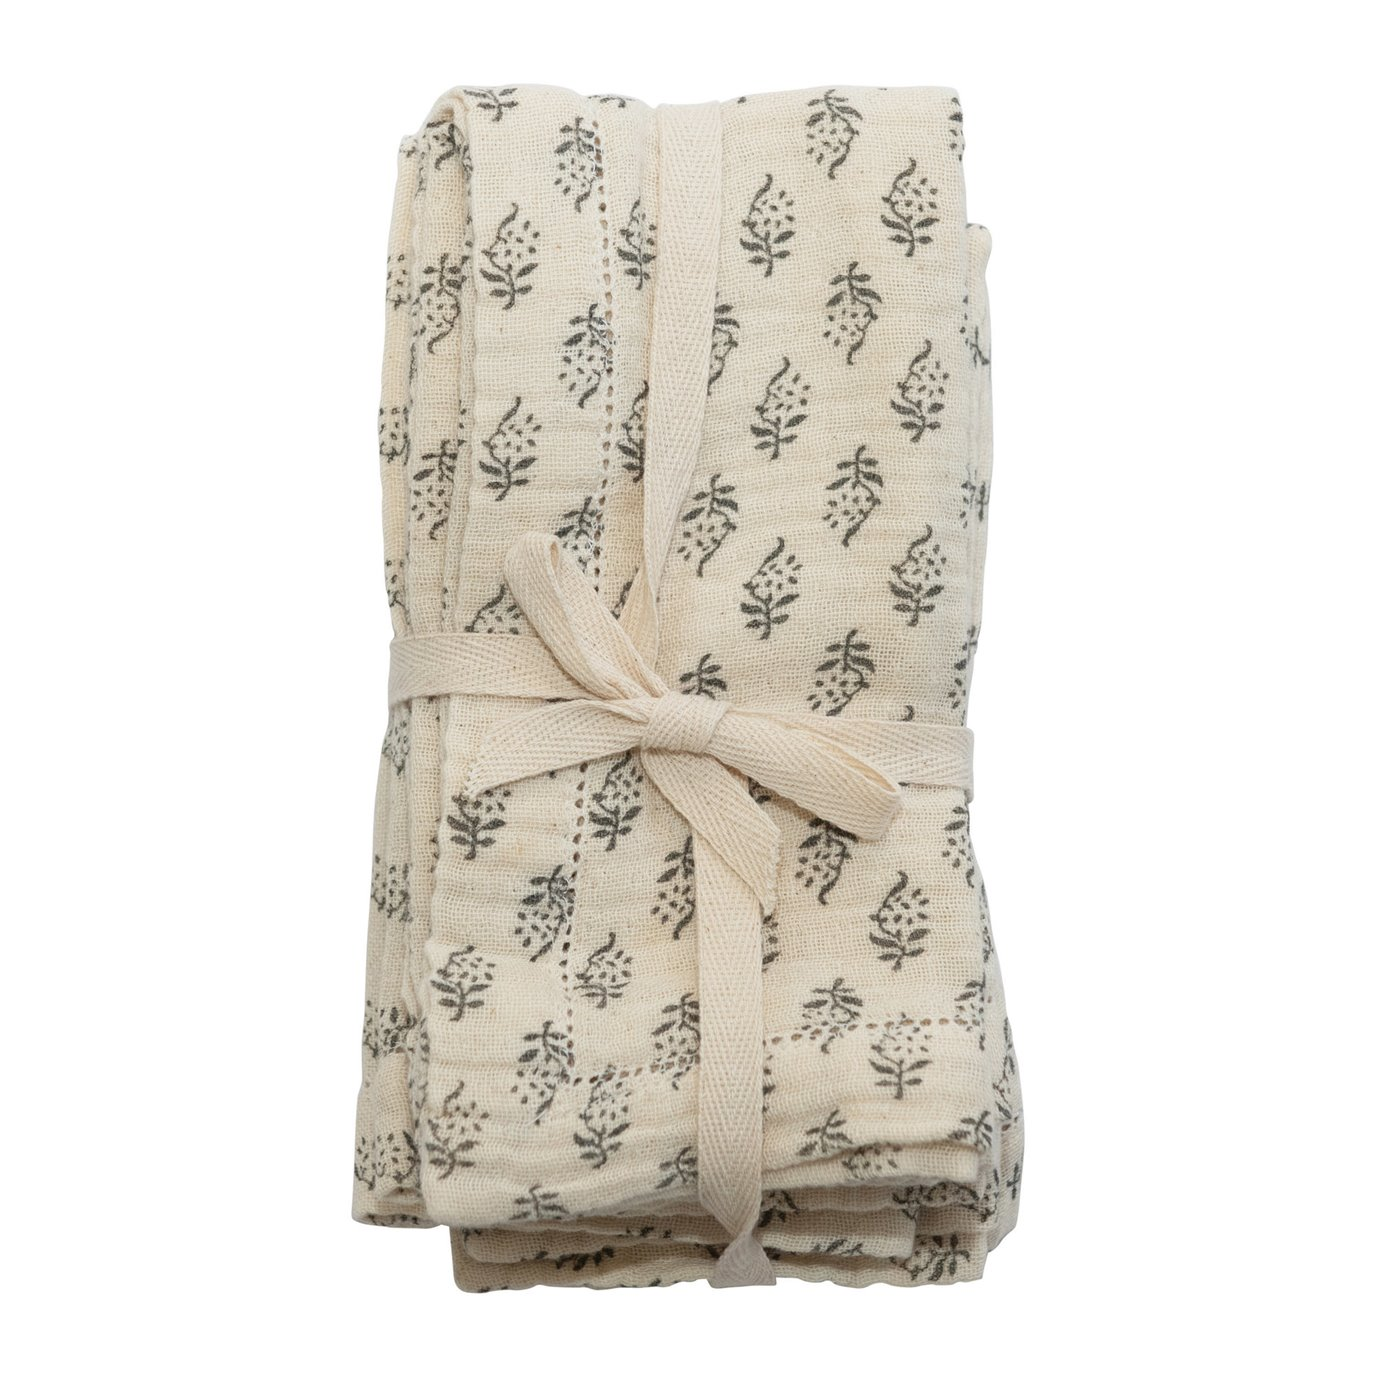 Cotton Napkins with Printed Floral Pattern, Charcoal & Cream Color, Set of 4